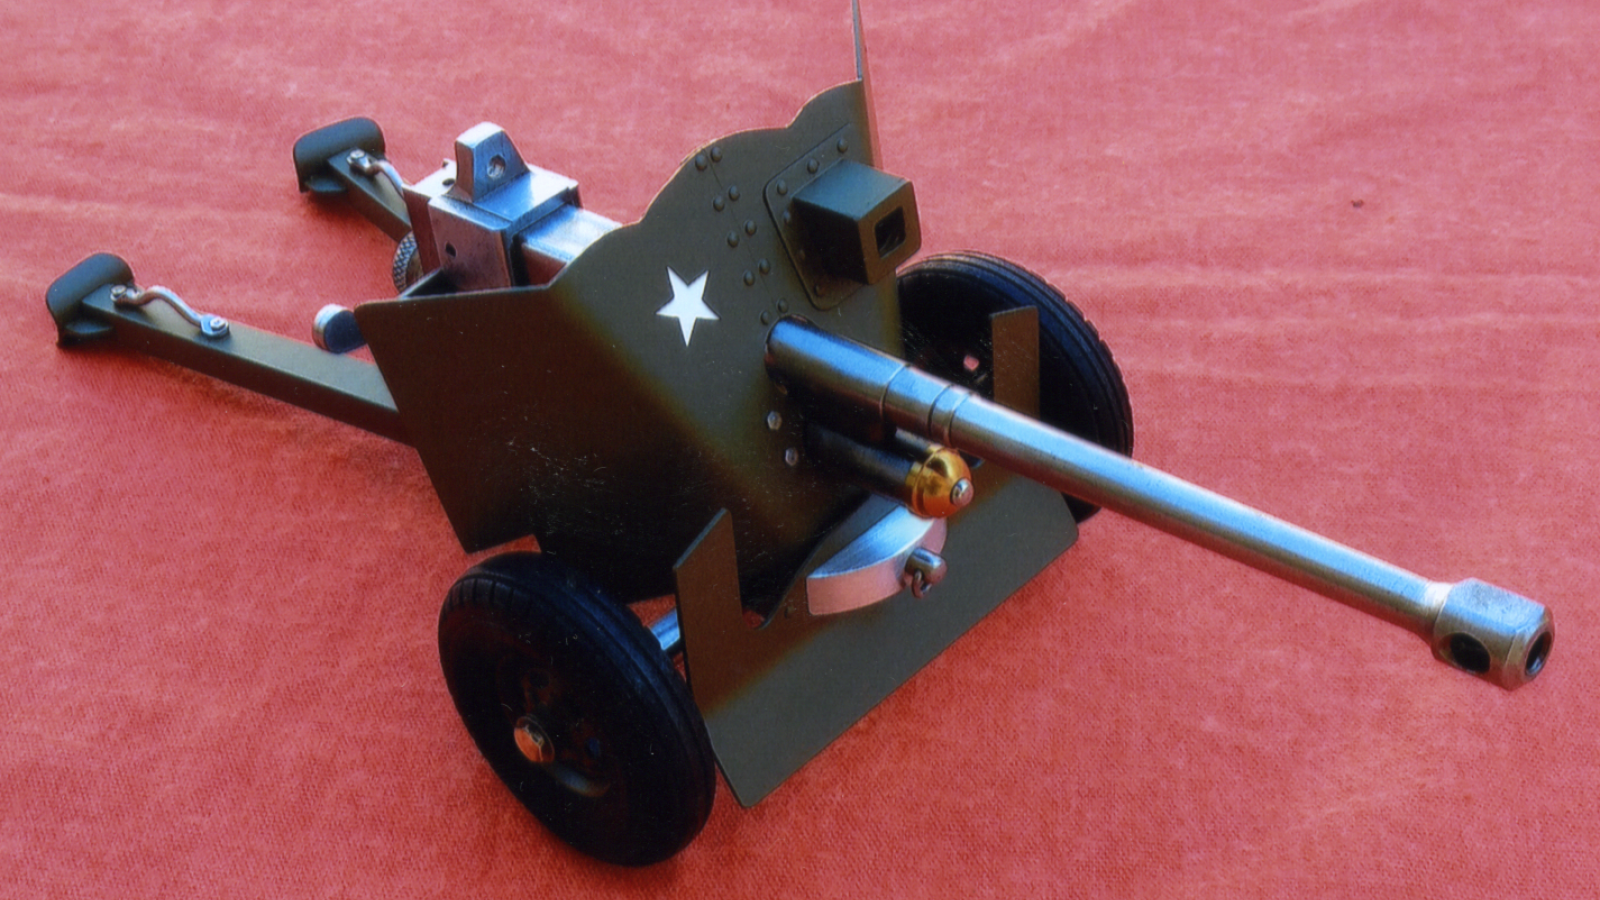 Model 57mm anti-tank gun